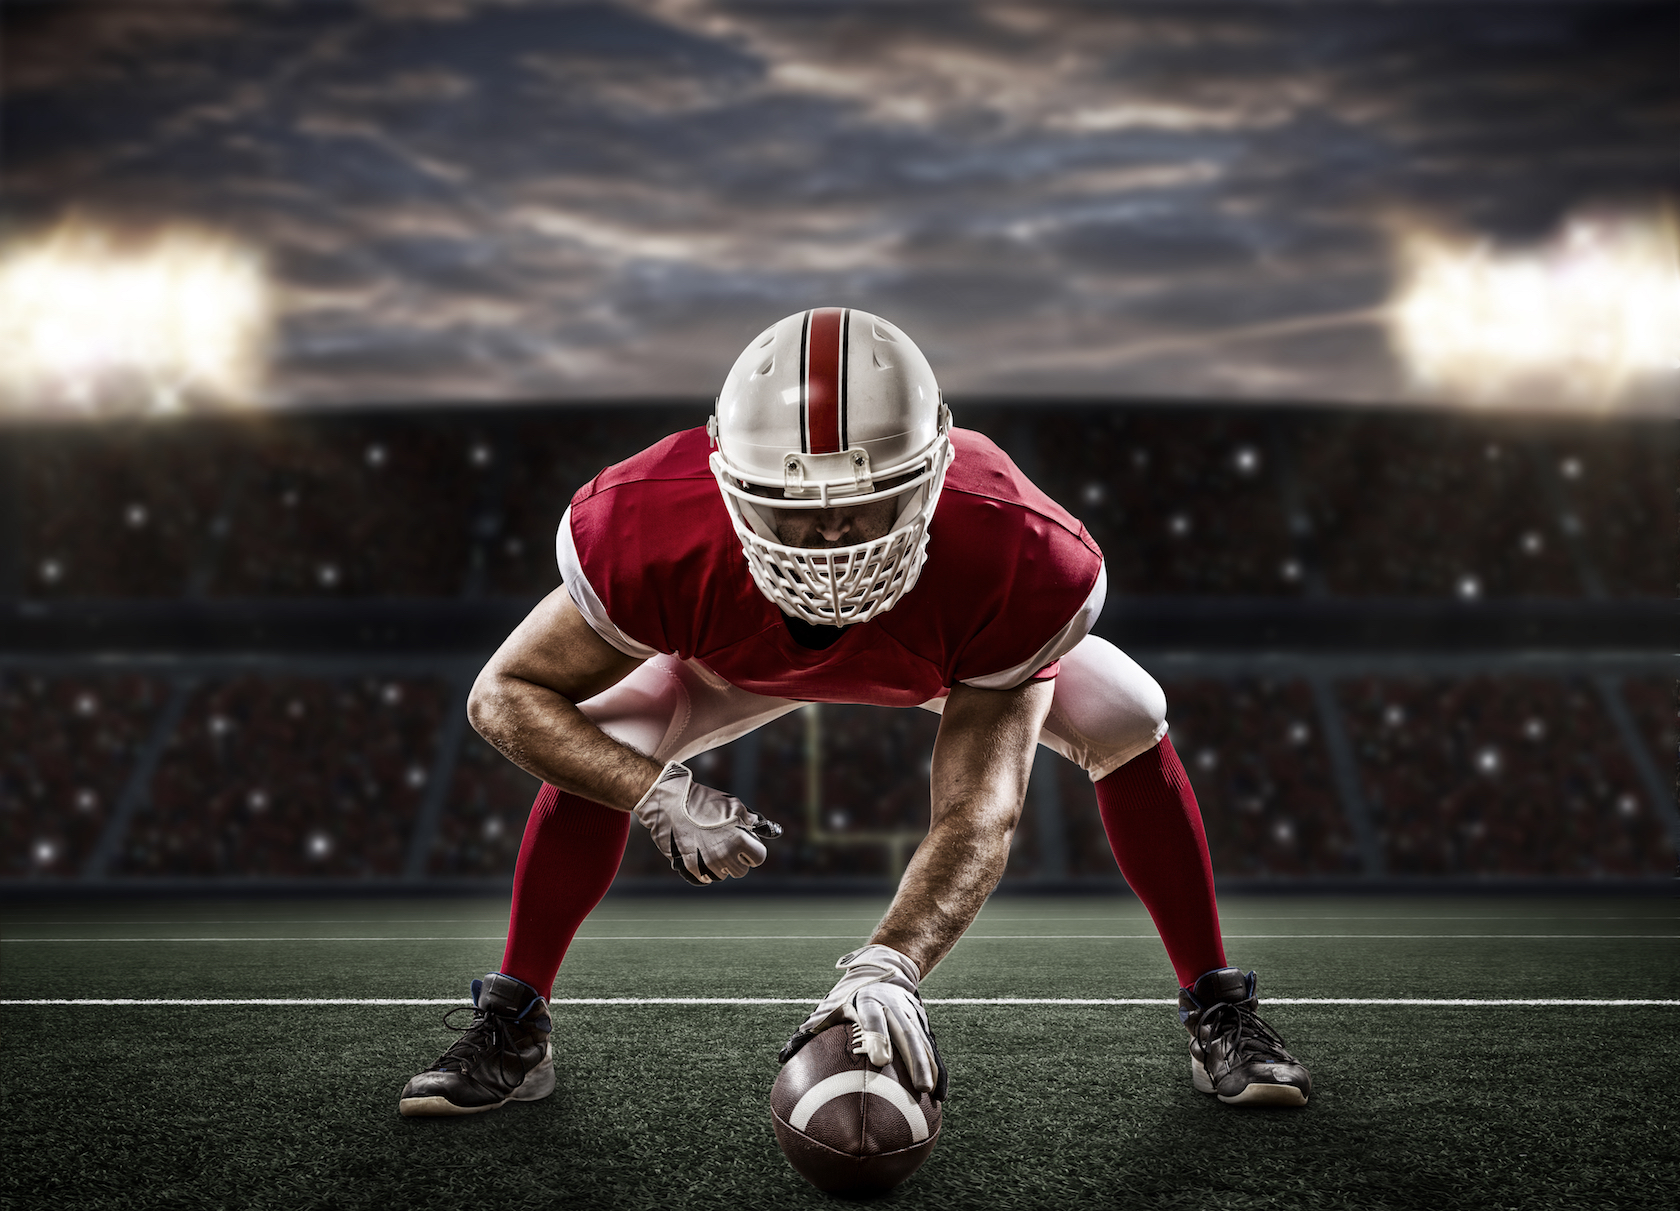 A new study revealed that concussions caused by football injuries or car accidents lead to a 56 percent higher chance of developing Parkinson's disease later in life.